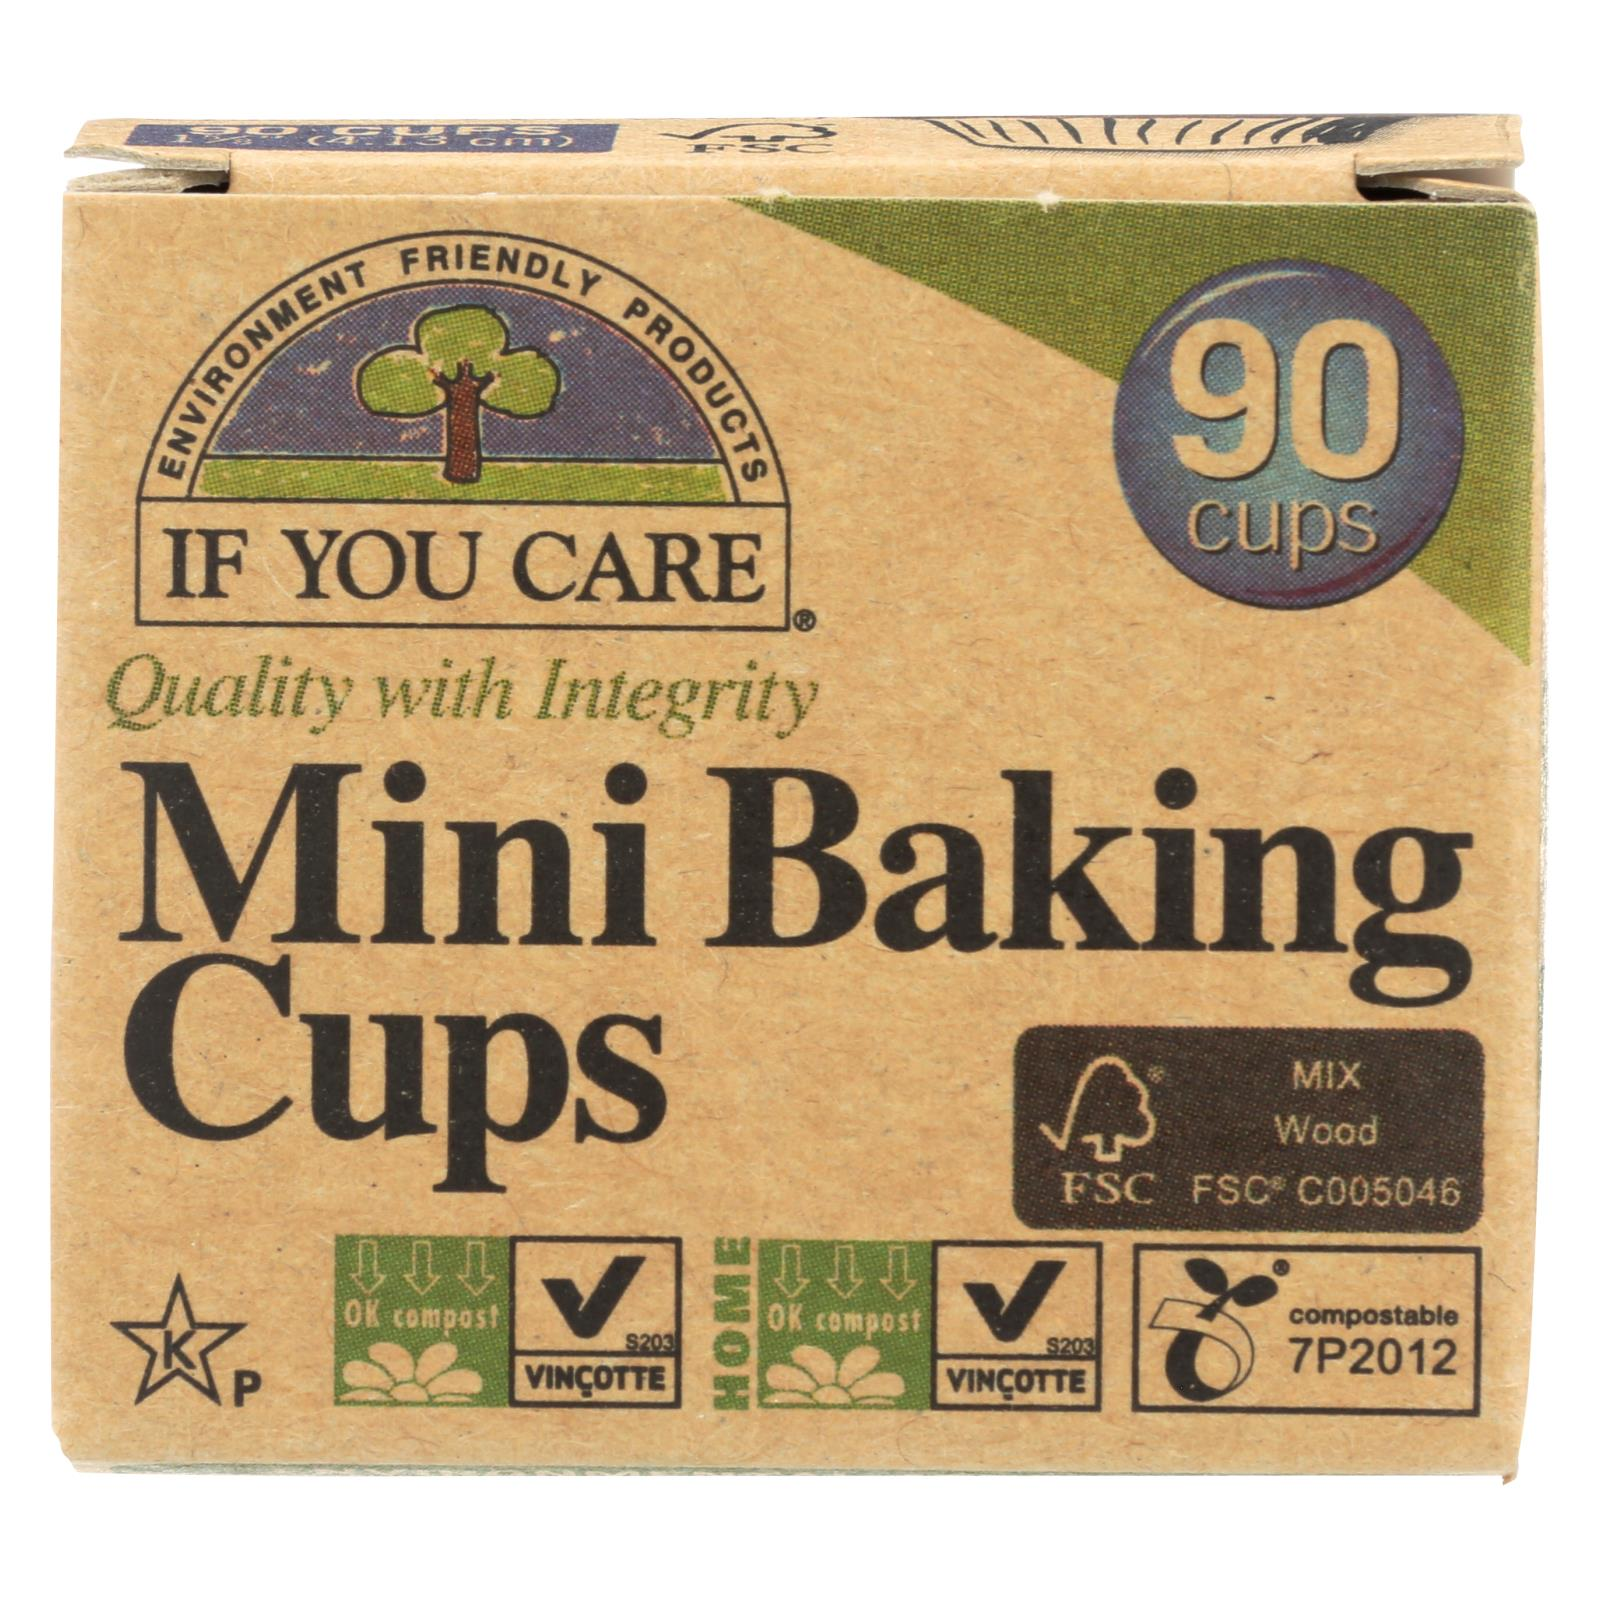 Buy If You Care Baking Cups - Mini - Unbleached Totally Chlorine Free - 90 Count - Baking and Cake Decorating from Veroeco.com